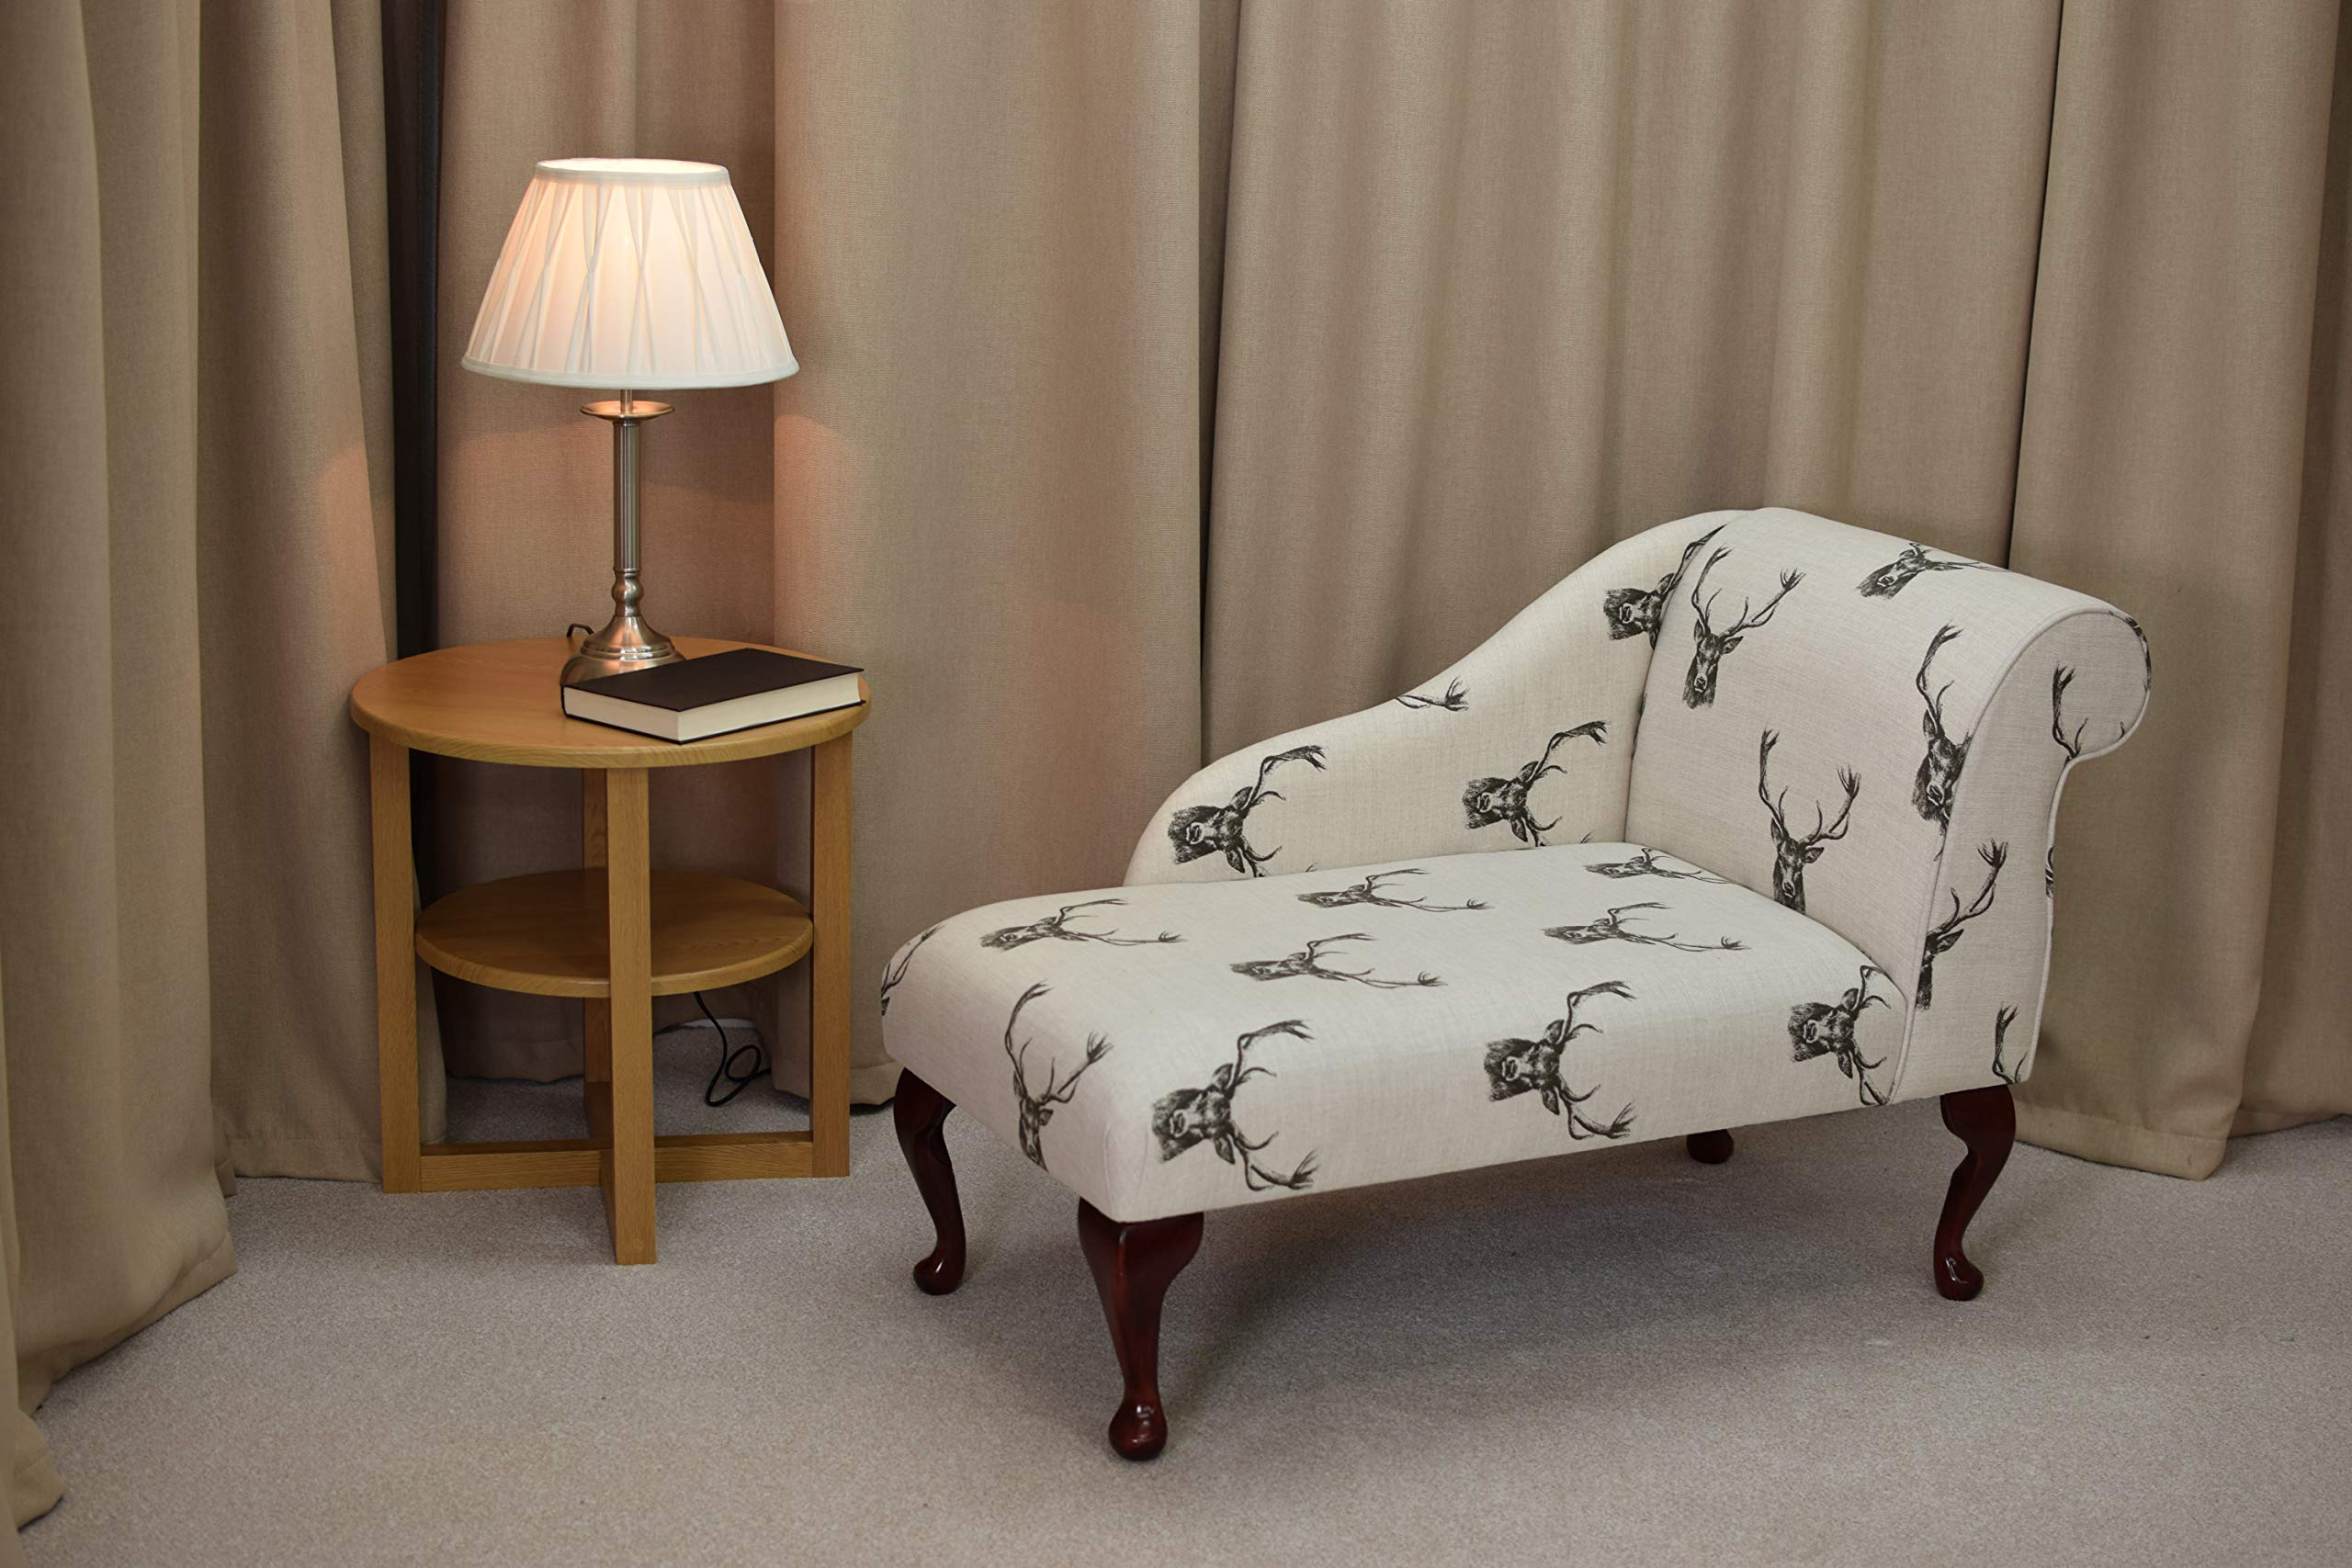 41″ Small Classic Chaise Longue – Chair Seat – Stags Charcoal Cotton Print Fabric – Right Facing With Queen Anne Legs